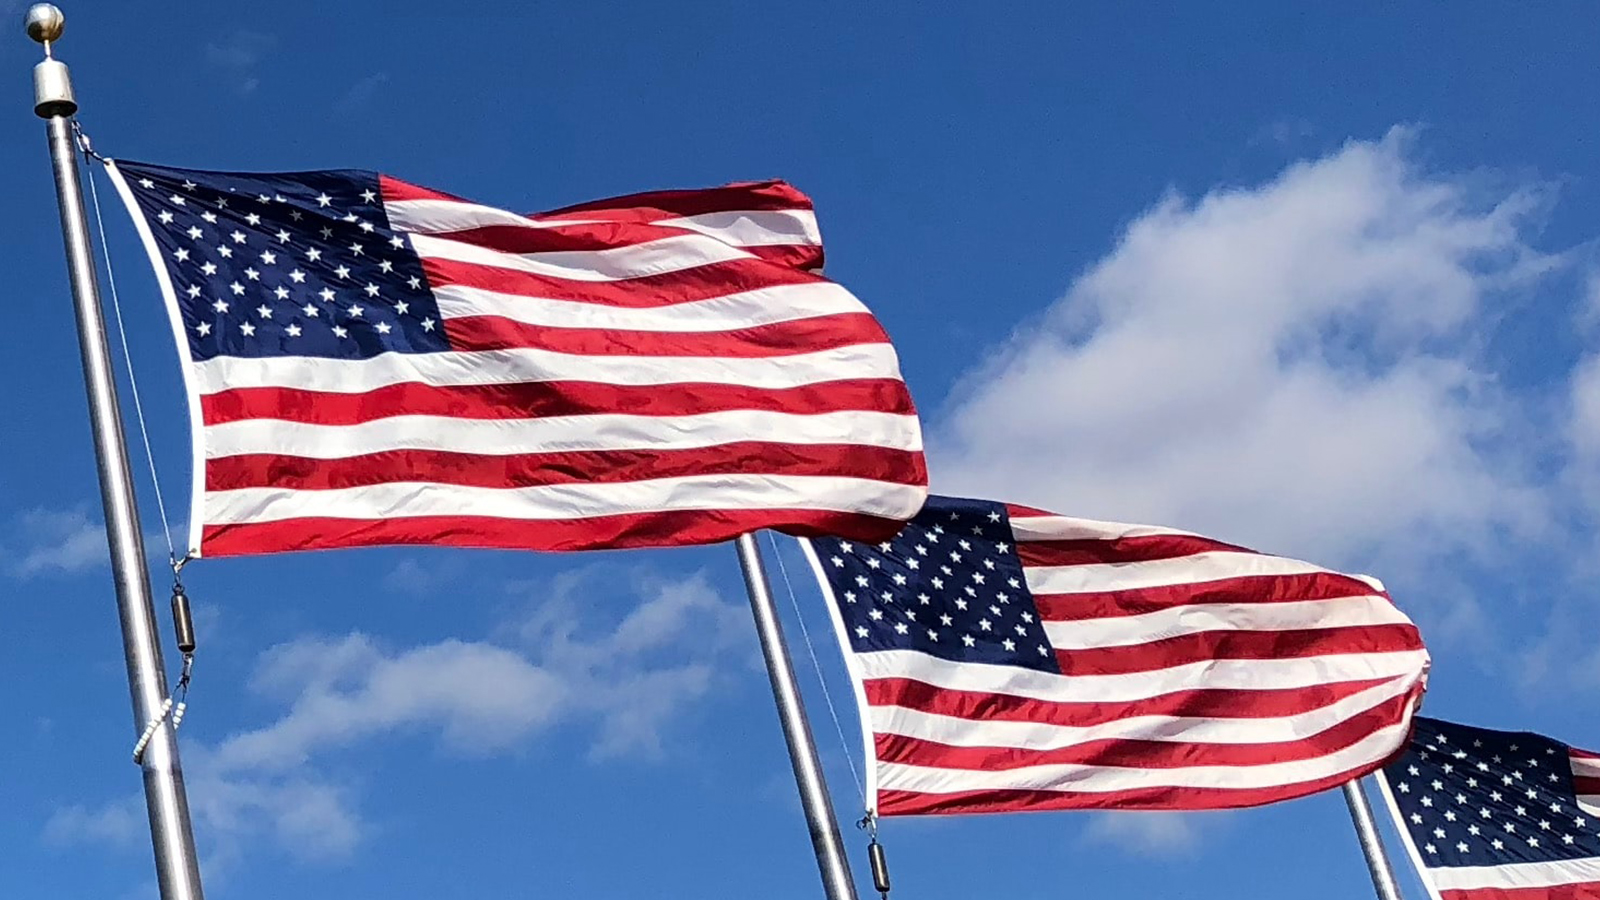 Flag Poles with American Flag